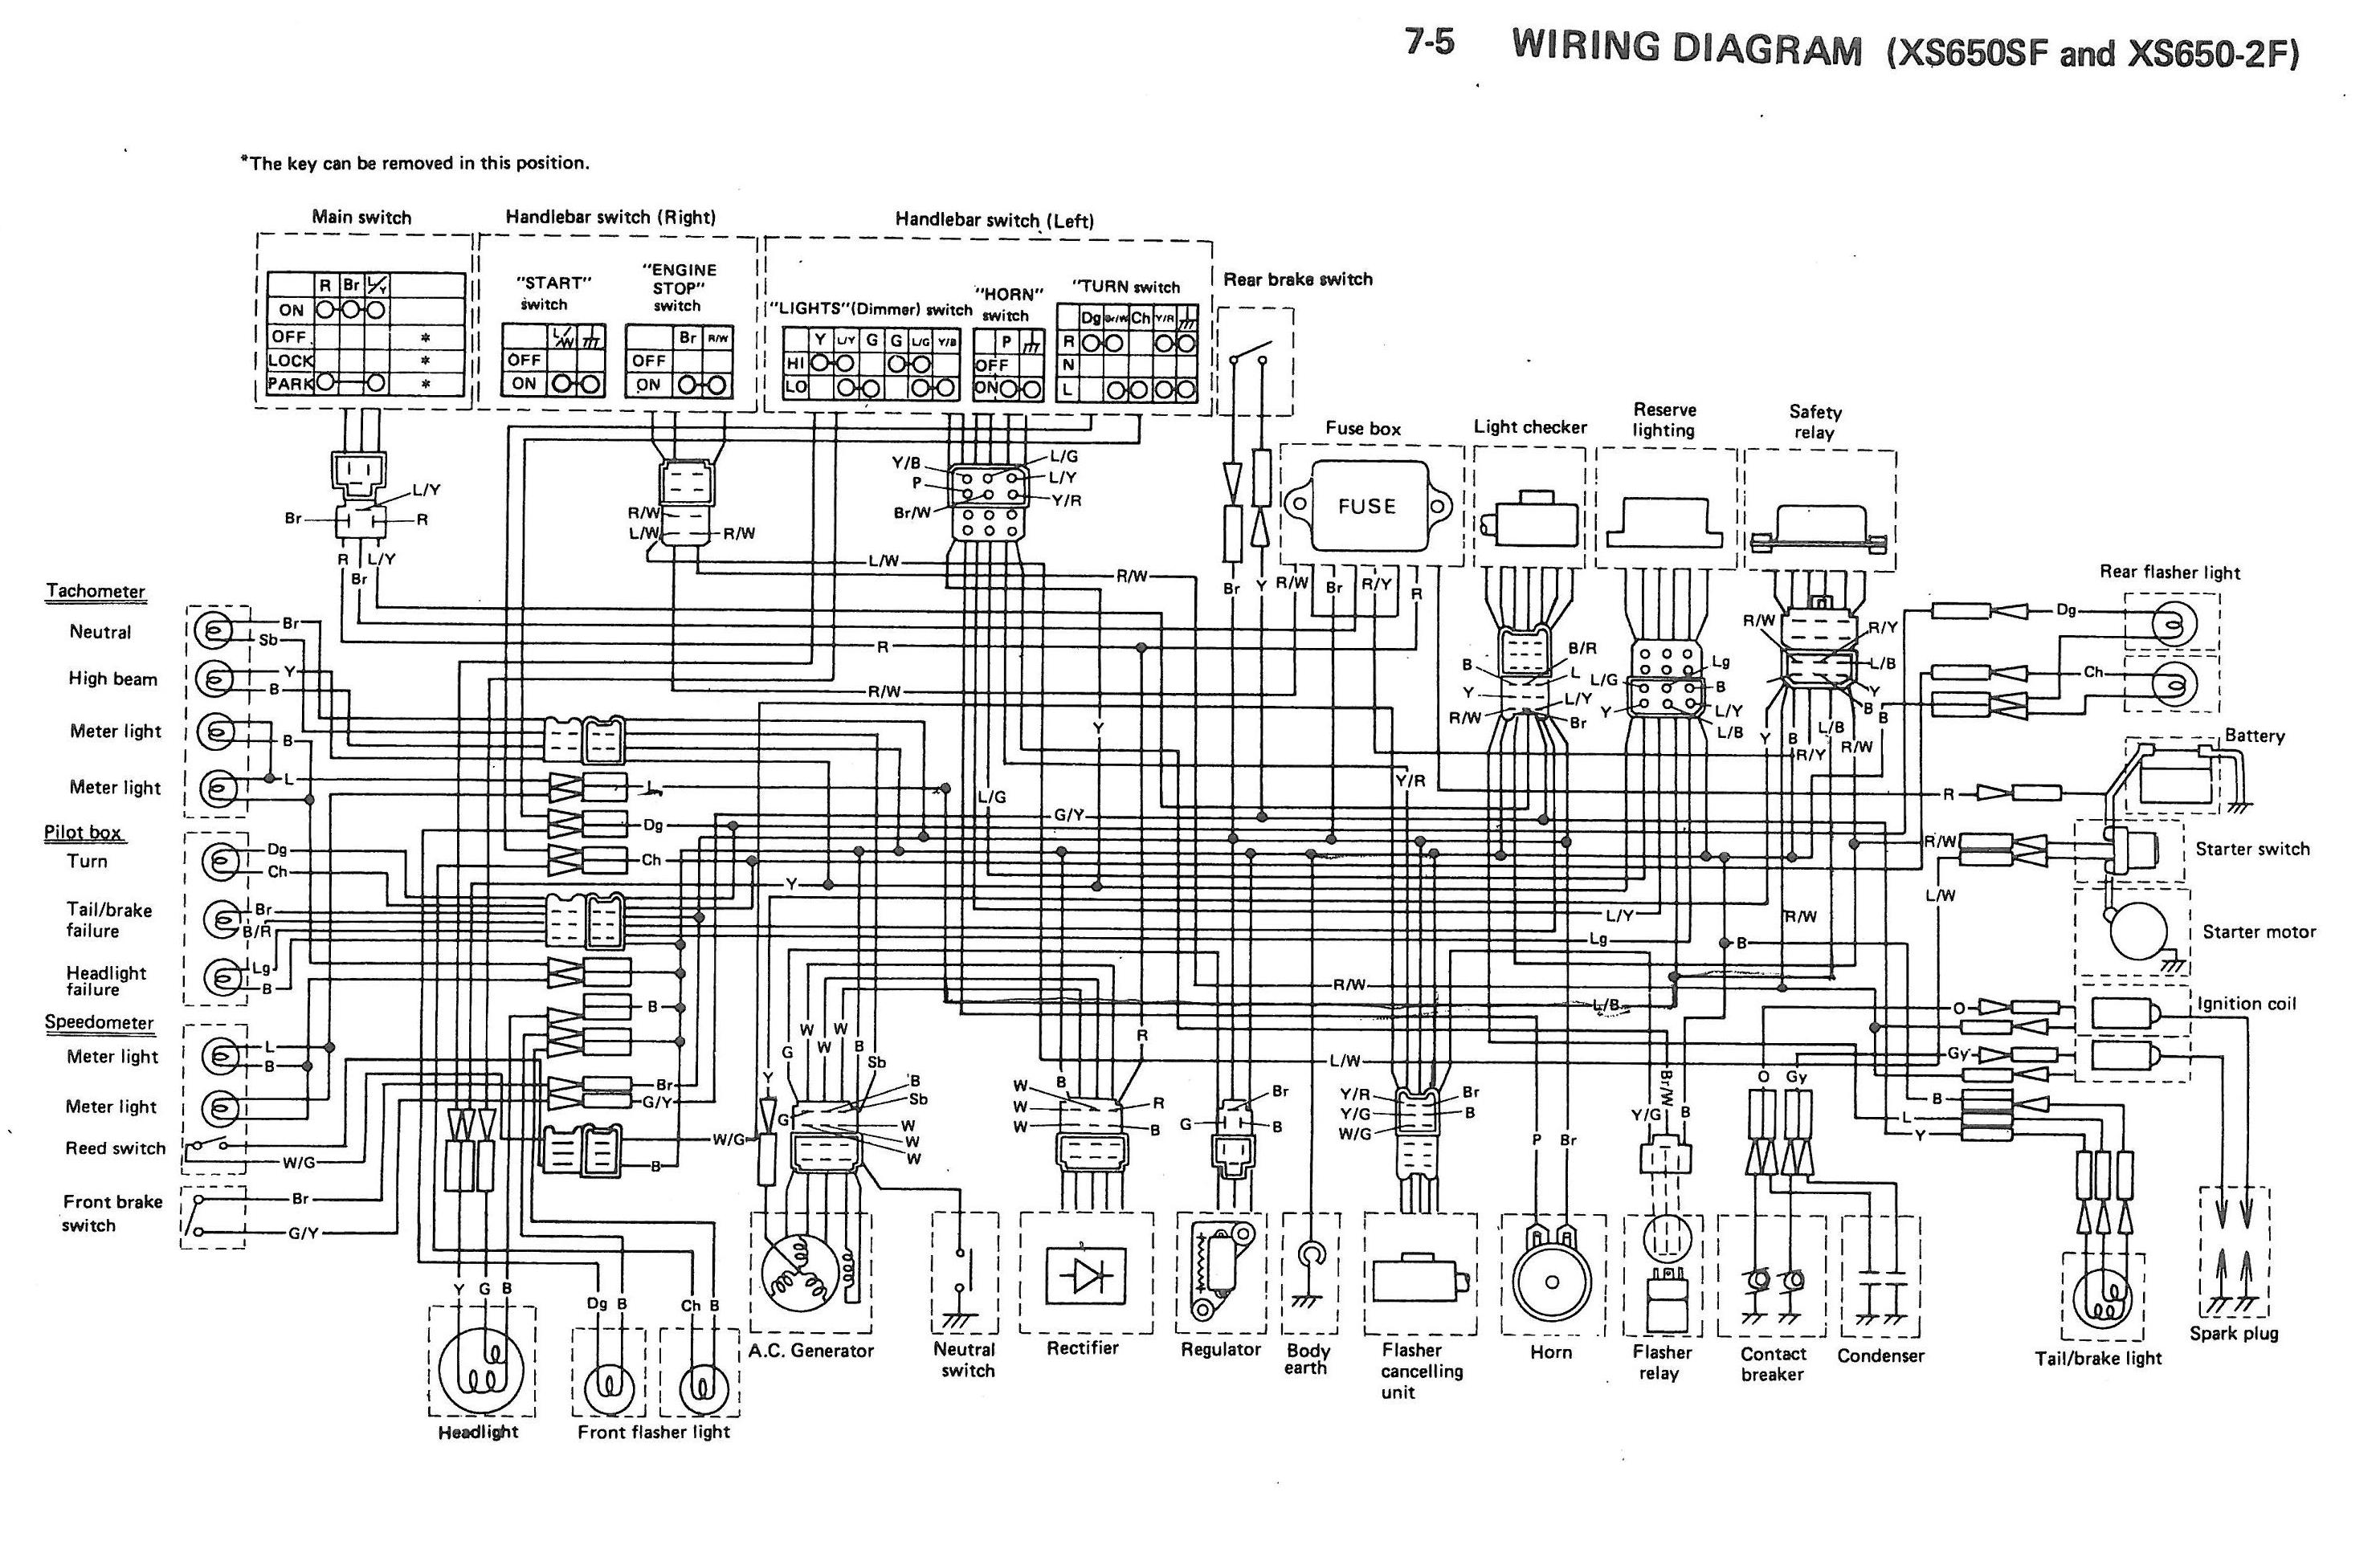 79 xs650sf 2f xs650 79 xs650sf 2f wiring diagrams thexscafe wiring diagram at gsmportal.co